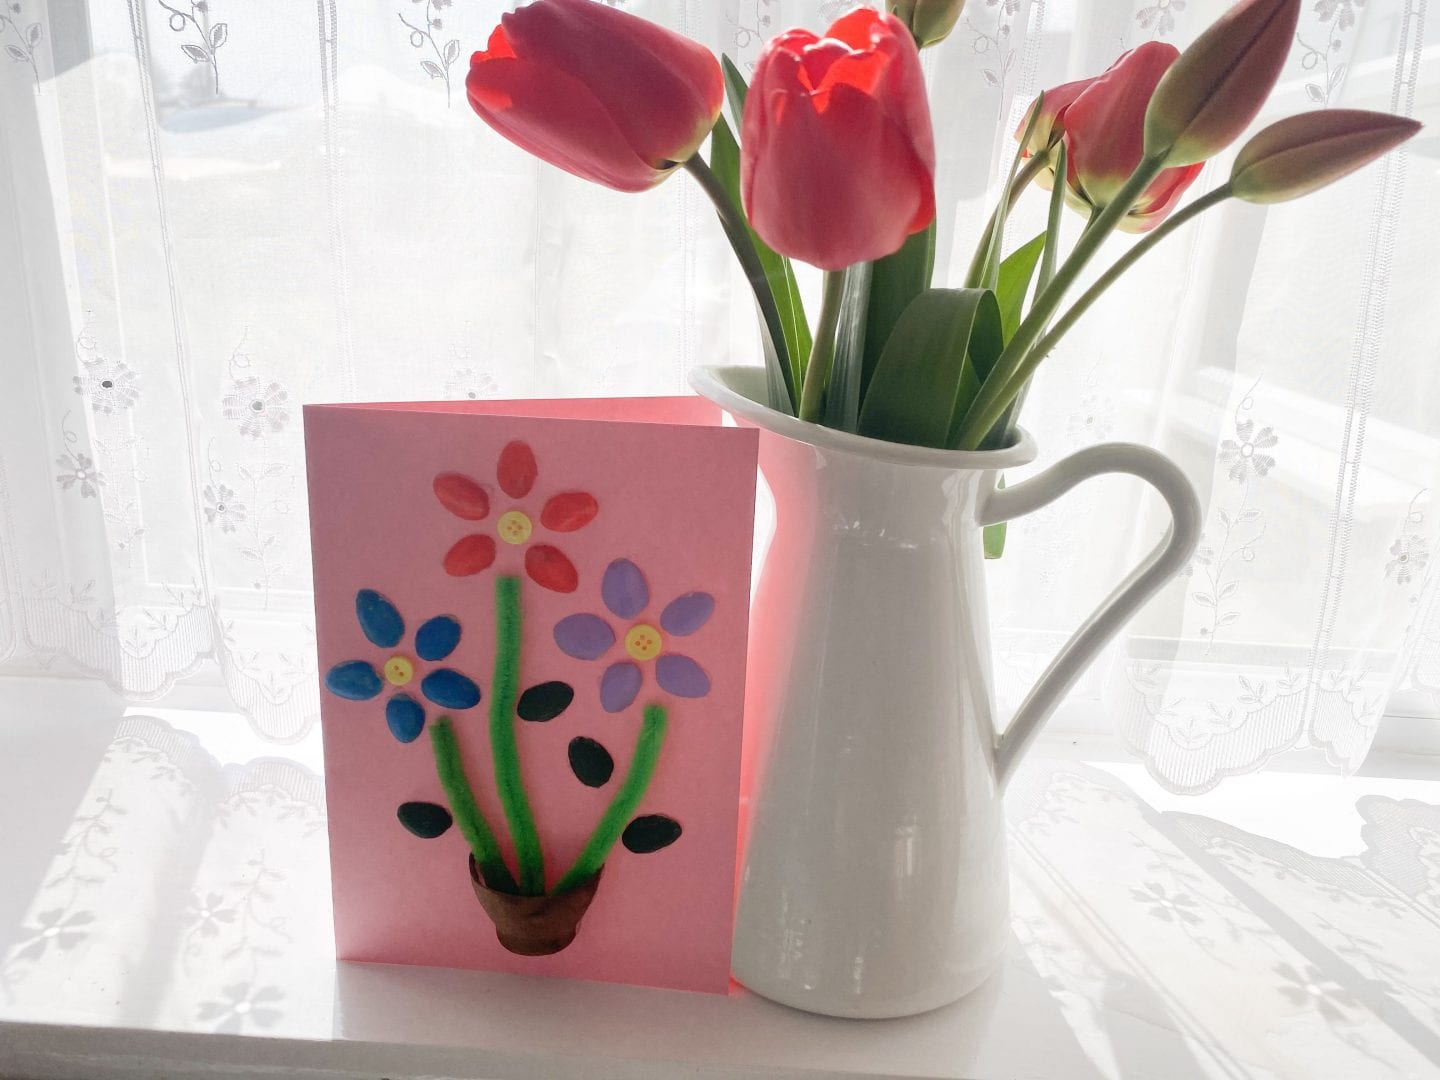 pistachio shell card next to a vase of tulips